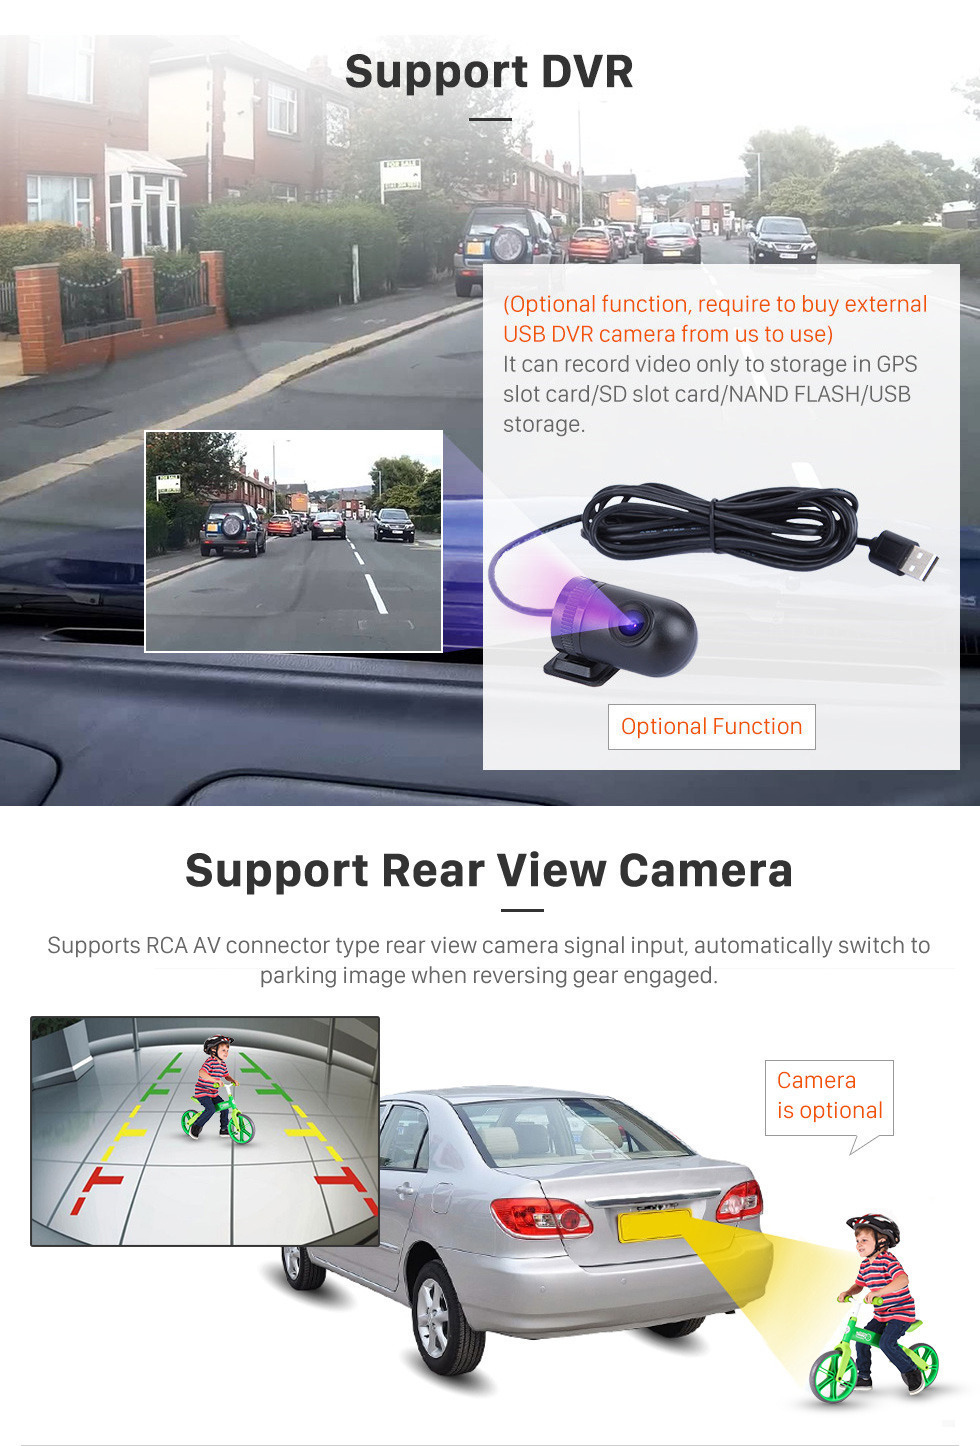 Seicane 9 inch Android 10.0 In Dash Bluetooth GPS System for 2010 2011 2012 2013 2014 2015 VW Volkswagen Tiguan with 3G WiFi Radio RDS Mirror Link OBD2 Rearview Camera AUX